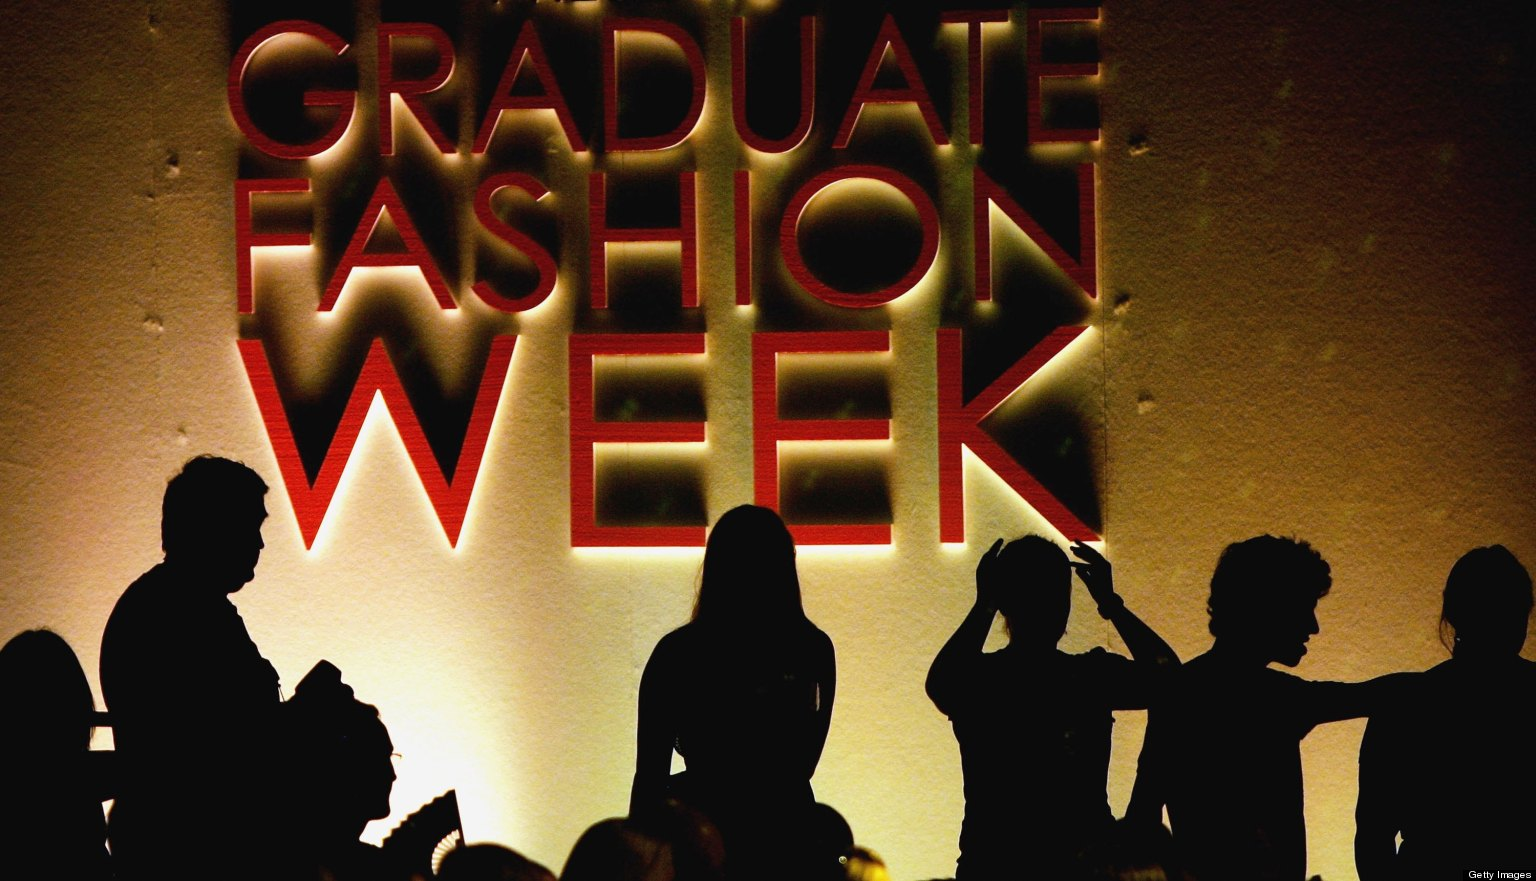 My Journey From Graduate Fashion Week to Fashion Designer